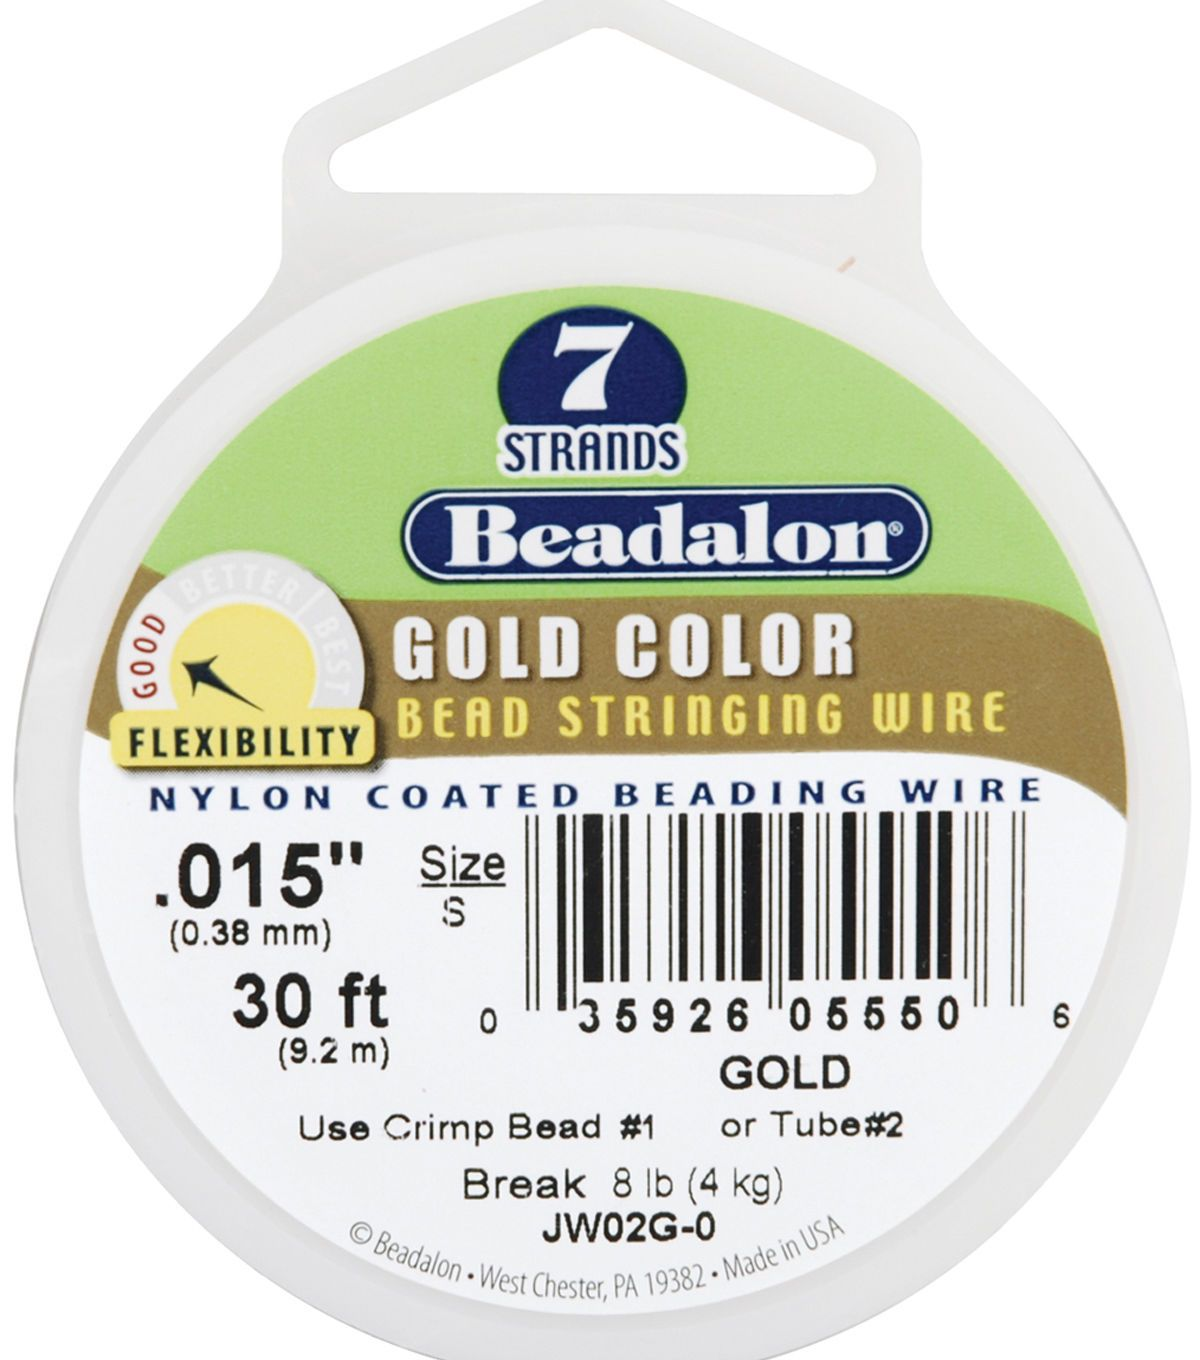 Beadalon Strand Nylon Coated Bead Stringing Wire Products